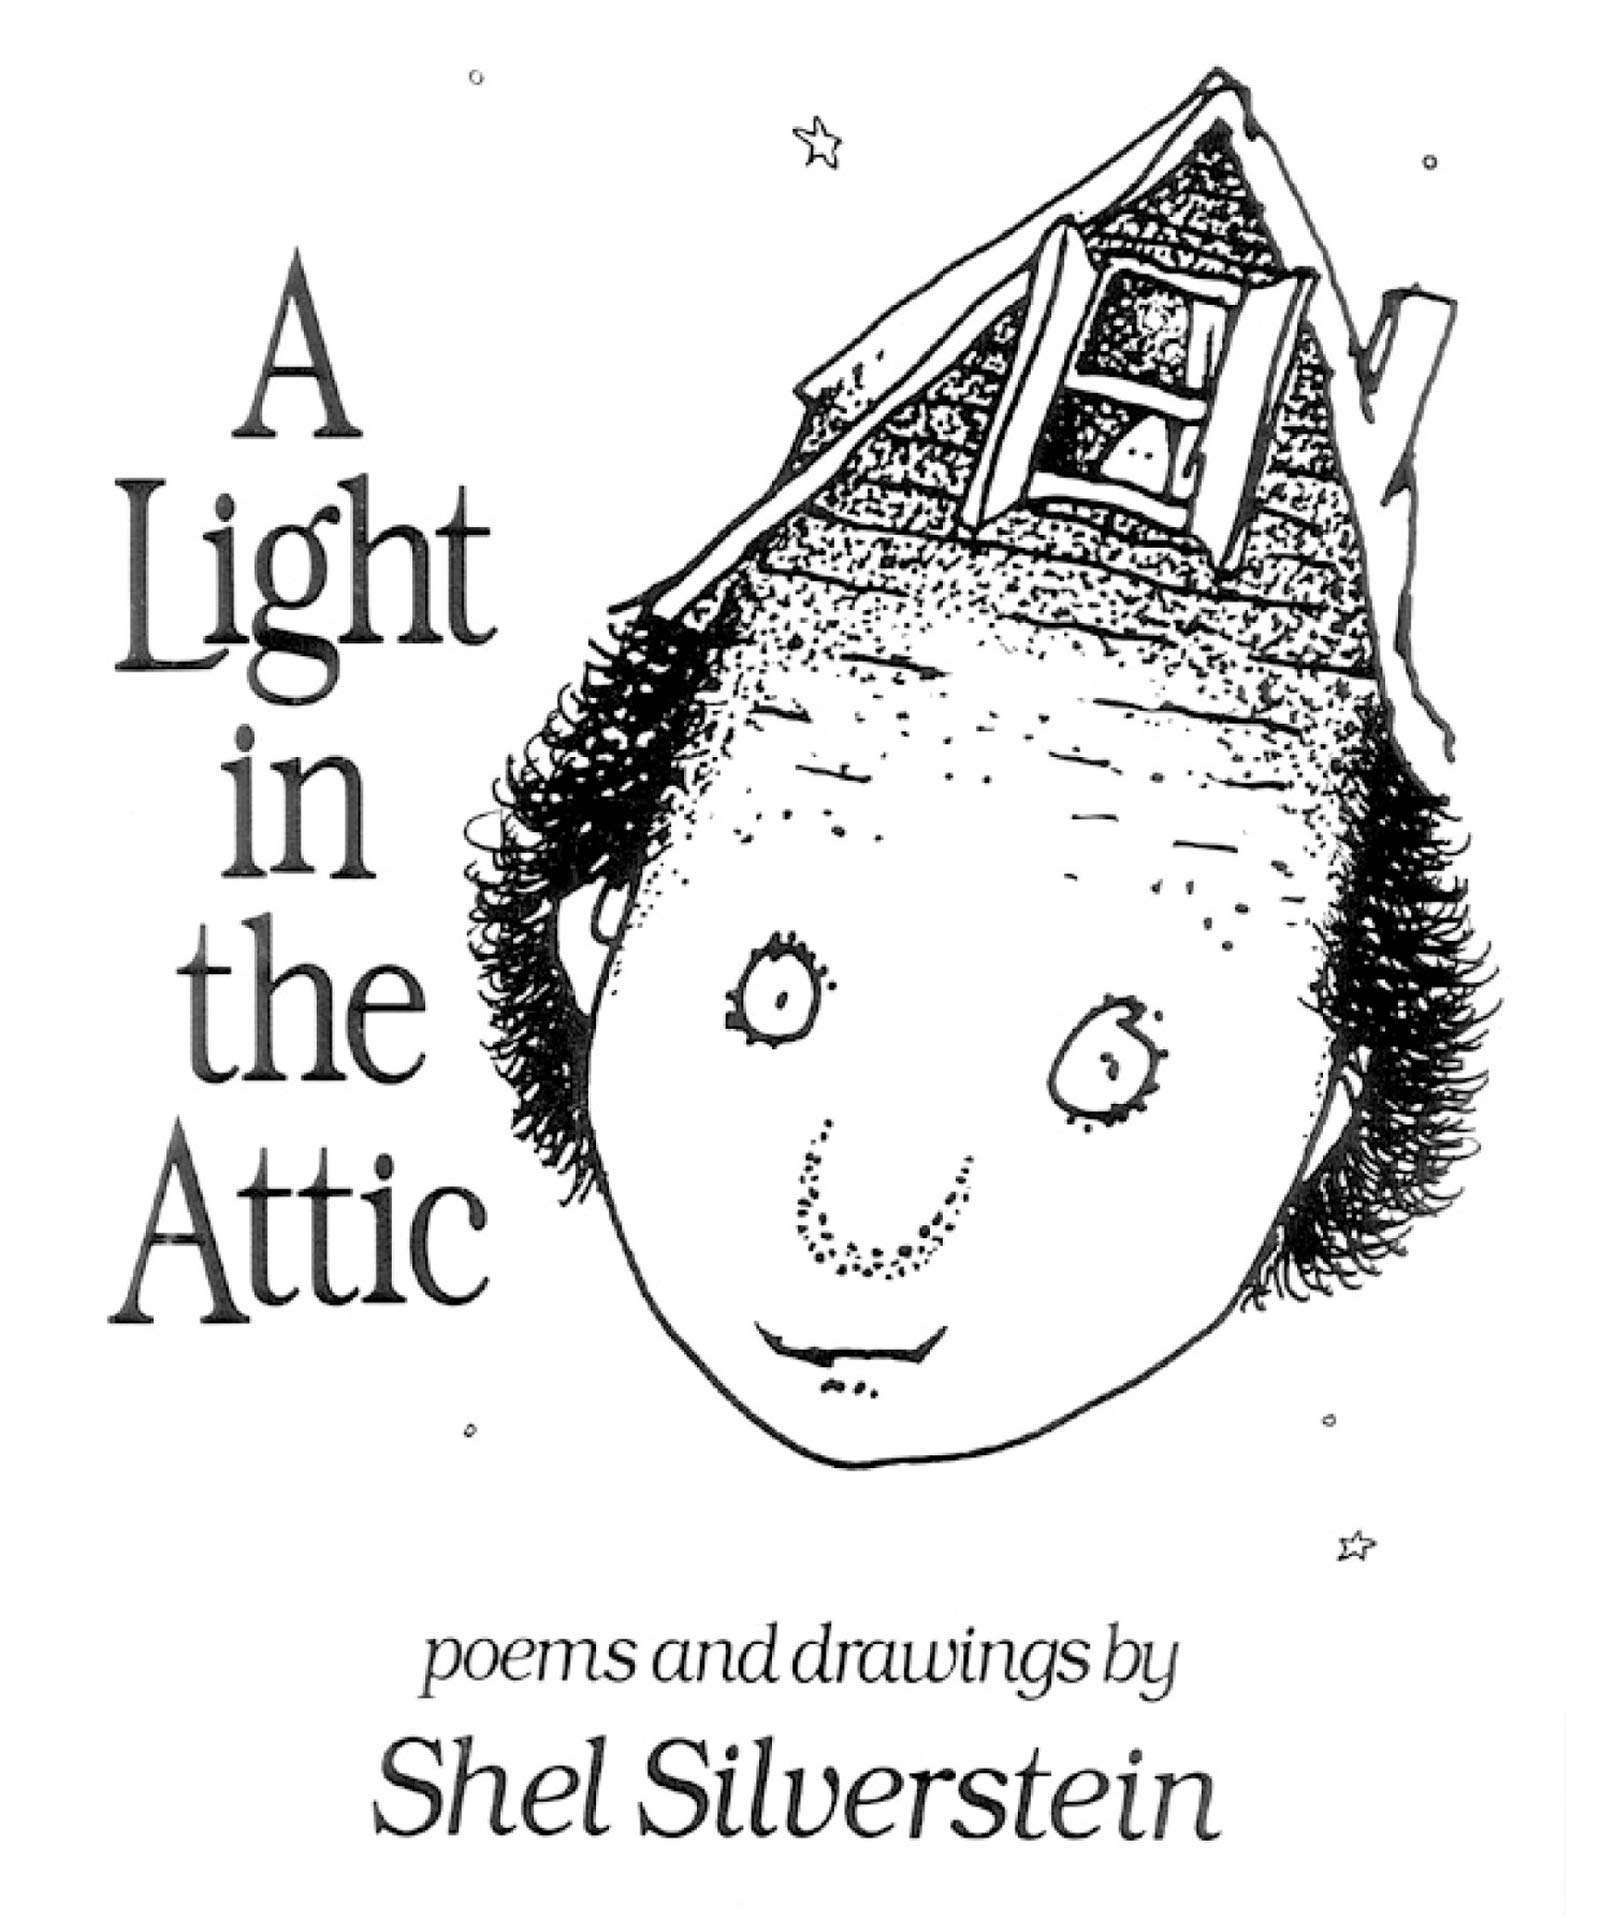 a light in the attic Opens in new window